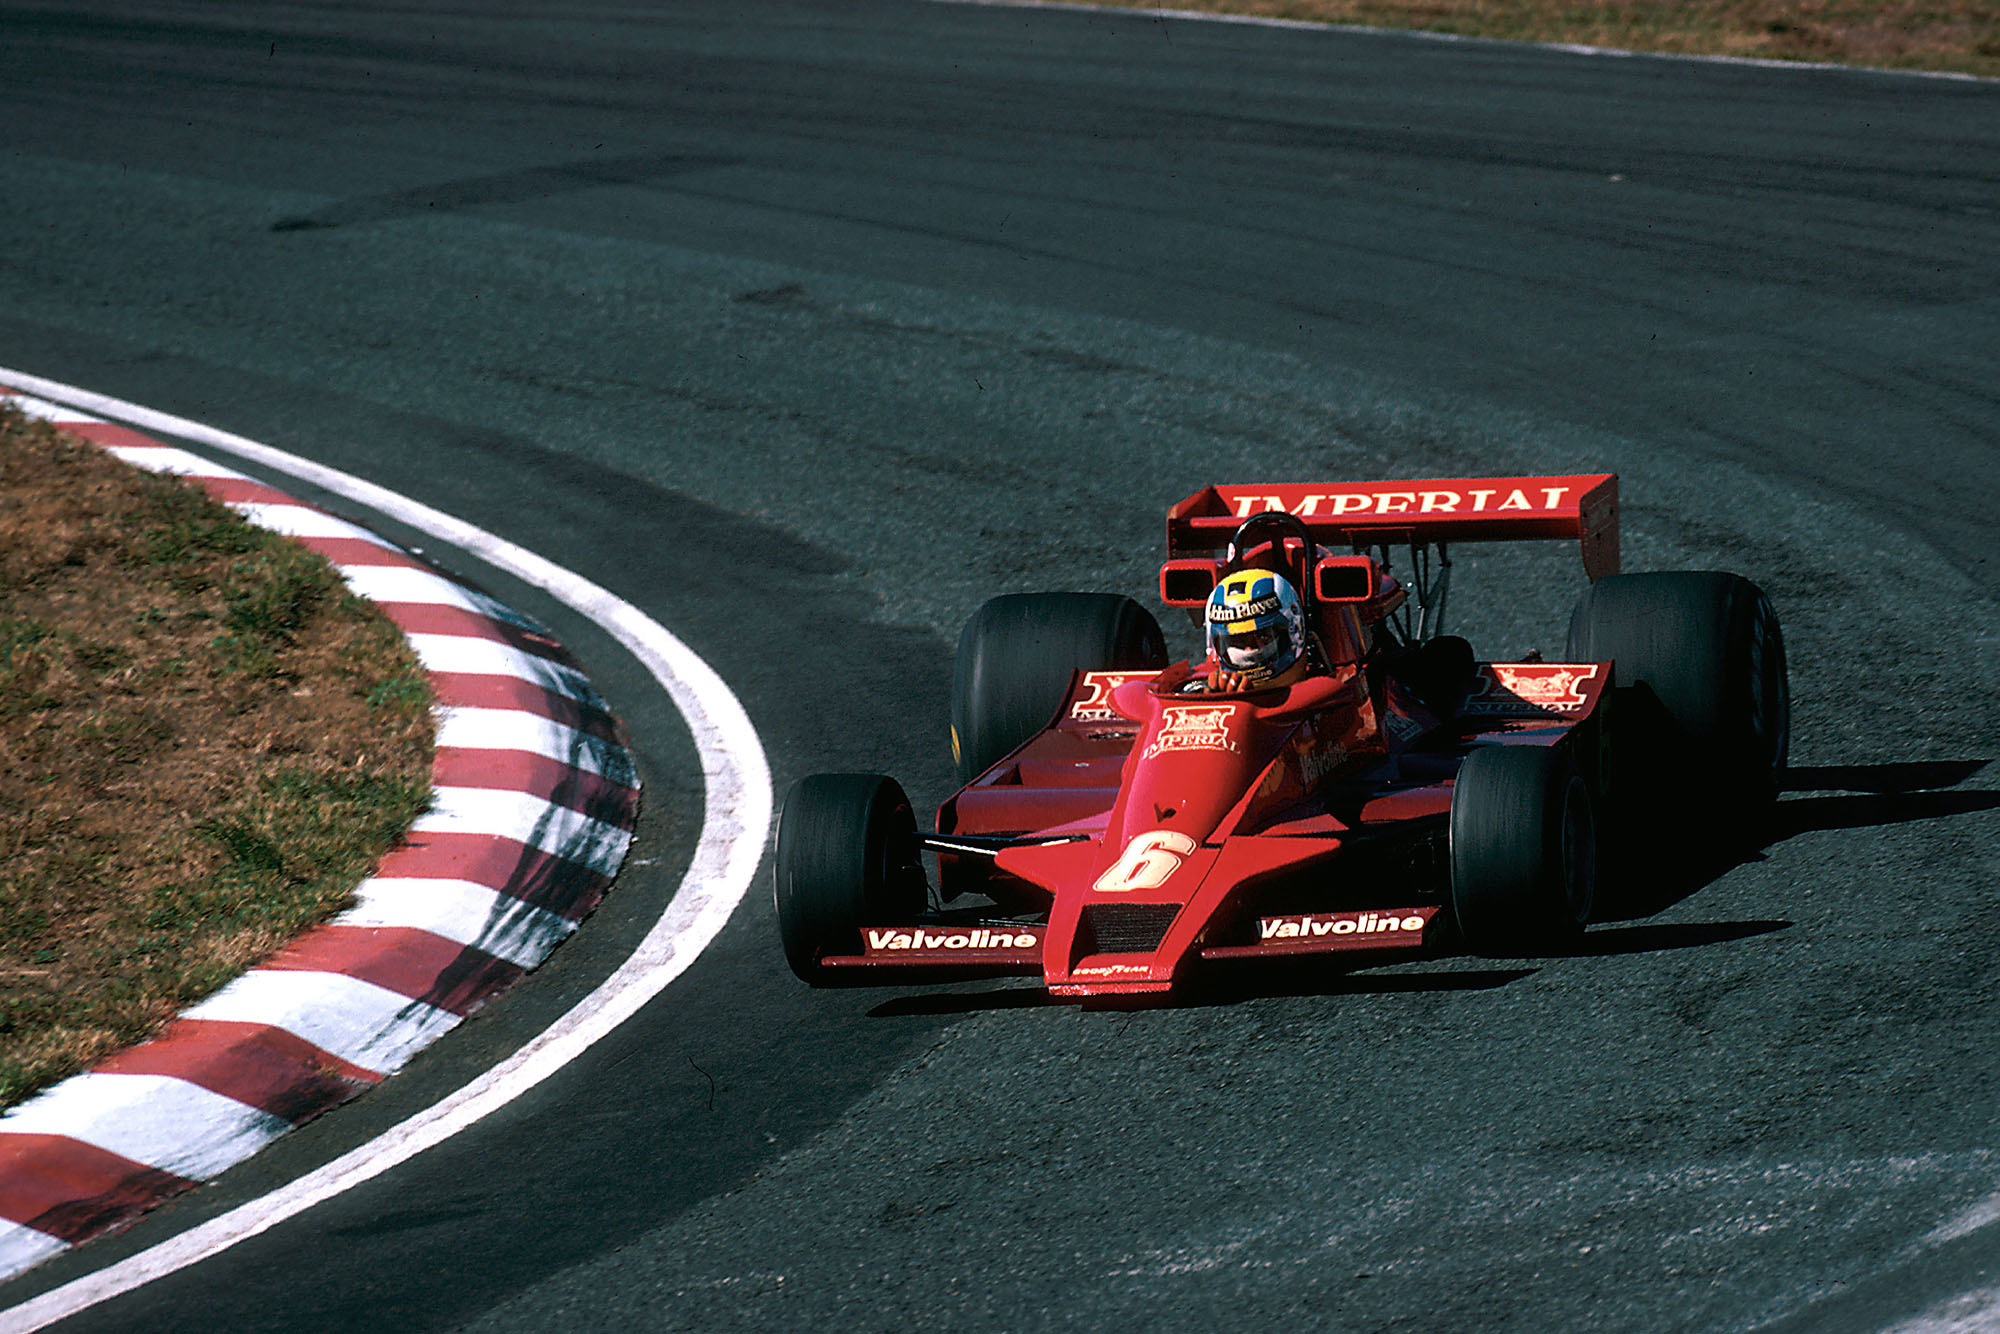 Gunnar Nilsson (Lotus) running a one-off red Imperial Tobacco livery, 1977 Japanese Grand Prix, Fuji.